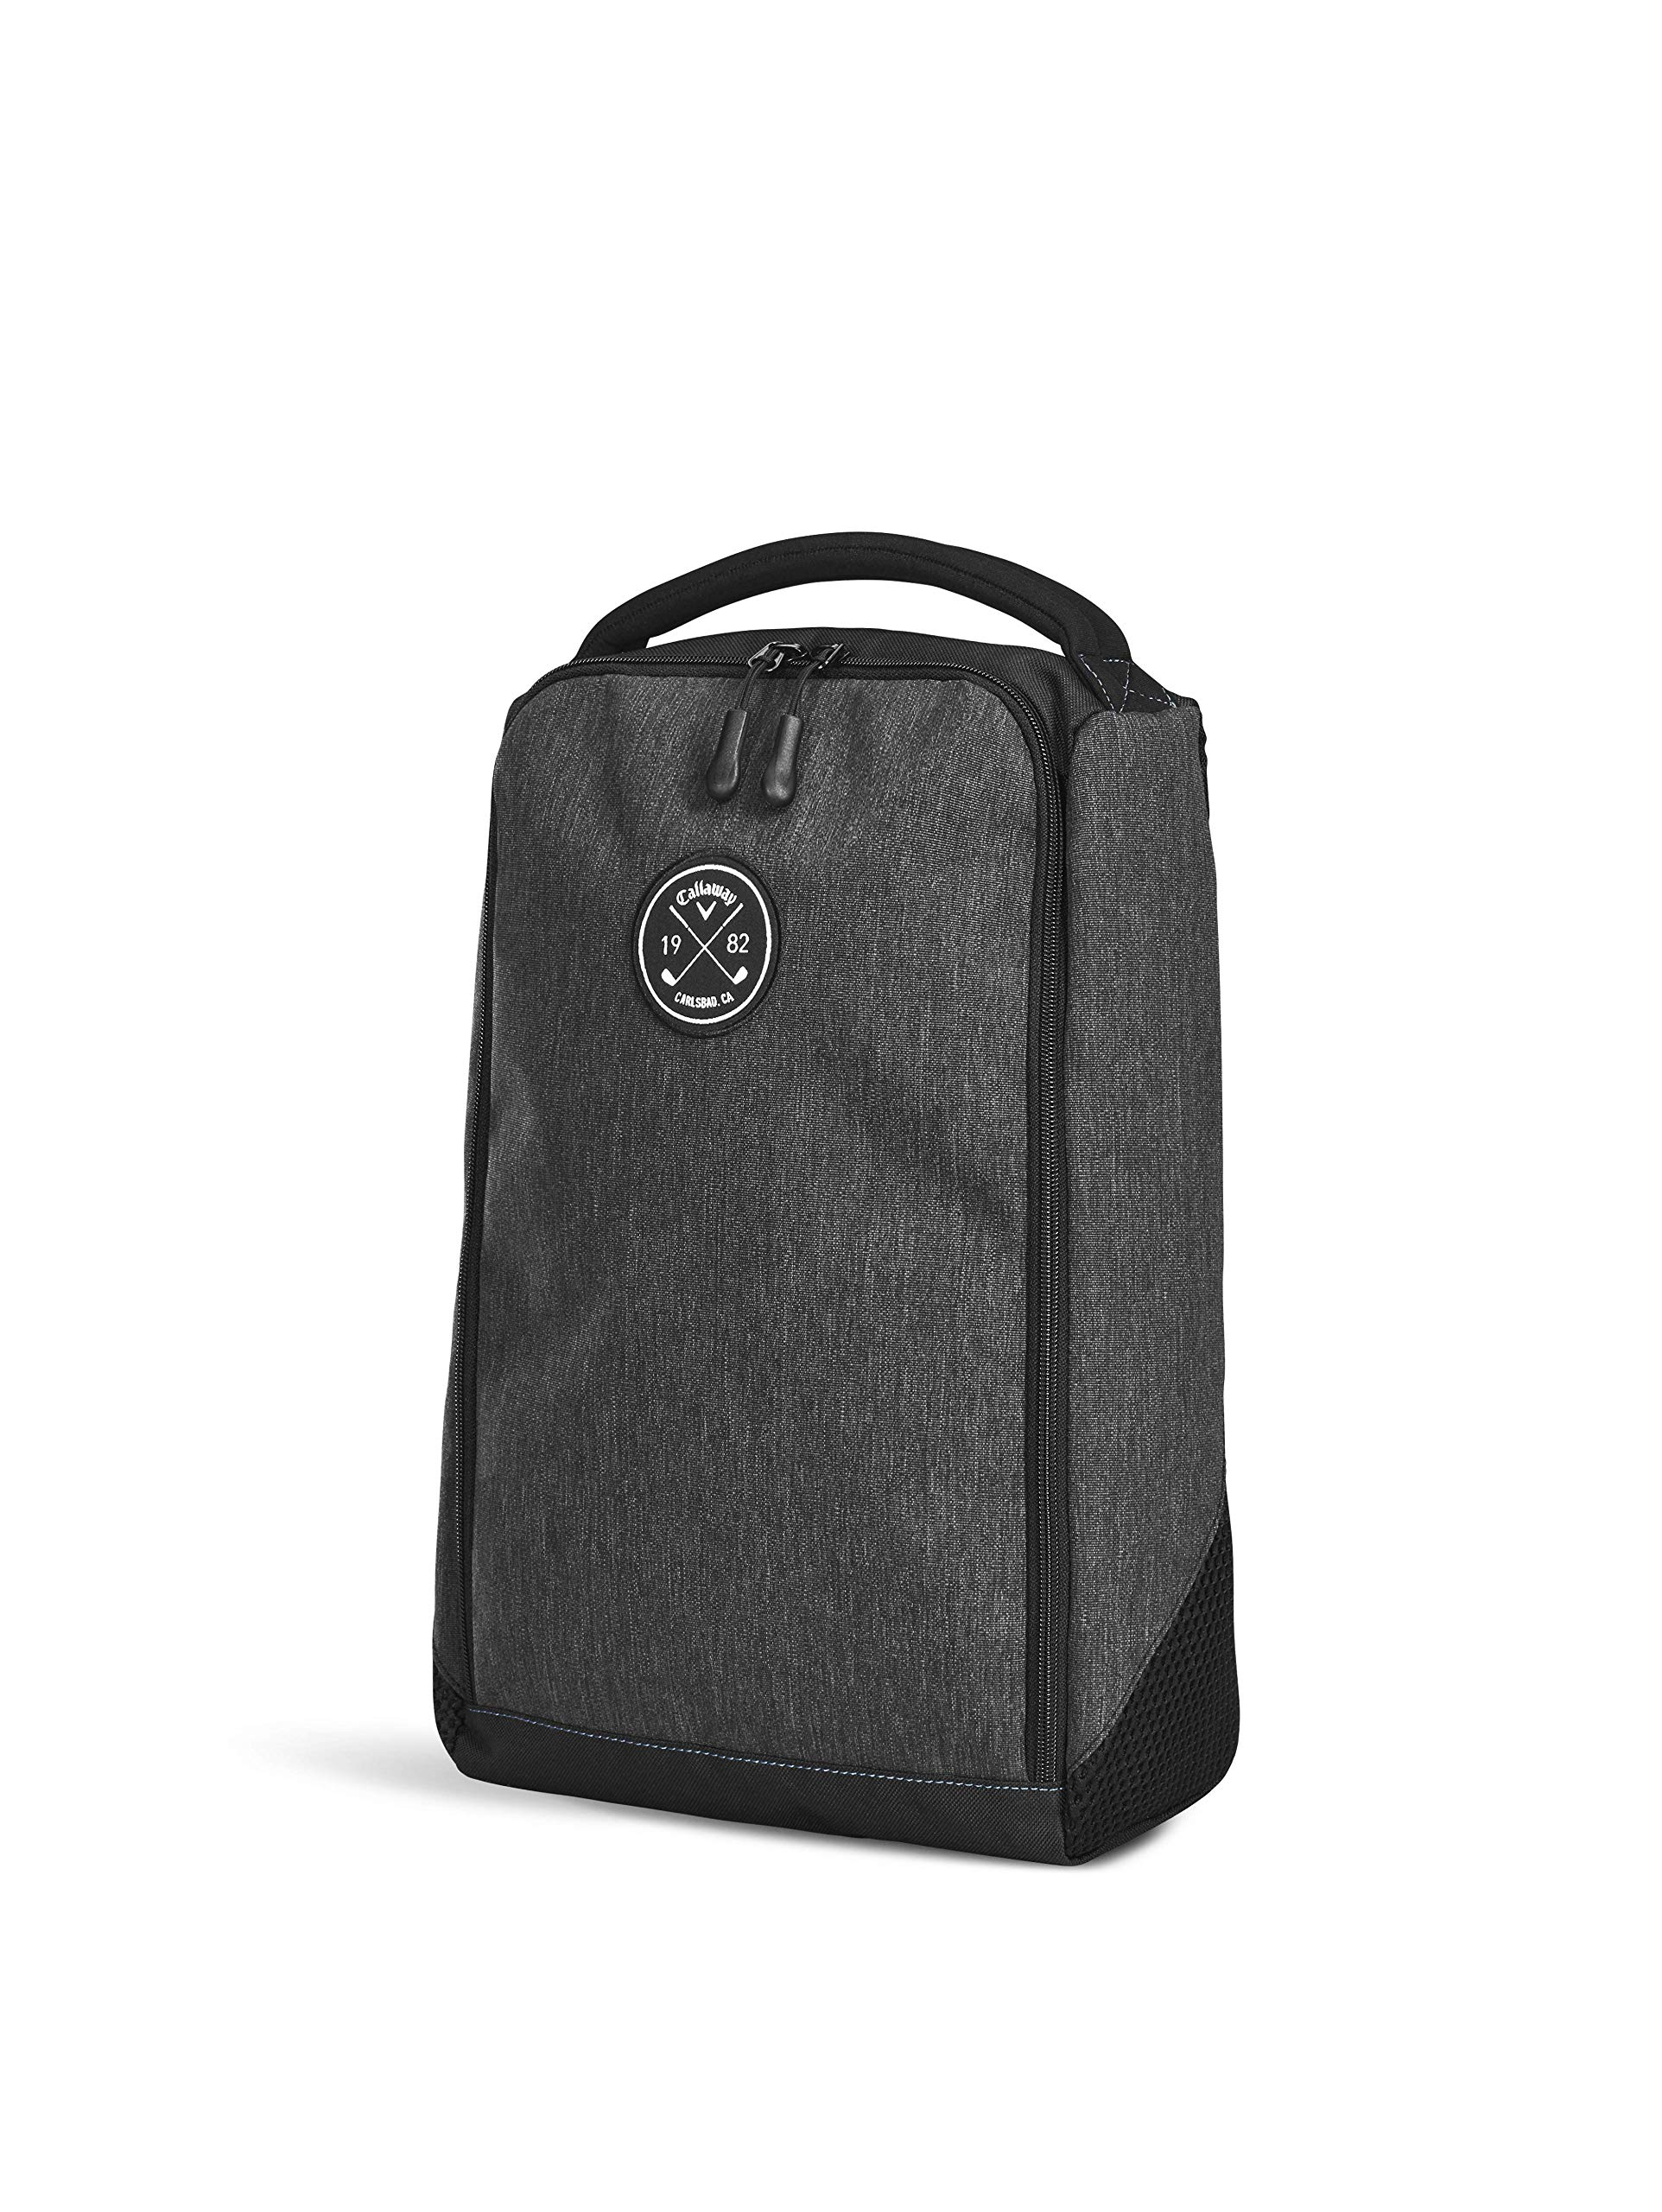 Callaway Men's Clubhouse Shoe Bag, Black, One Size Callaway Padded Comfort Grip Handle Dual Side Air Vents Easy Glide Zipper 3